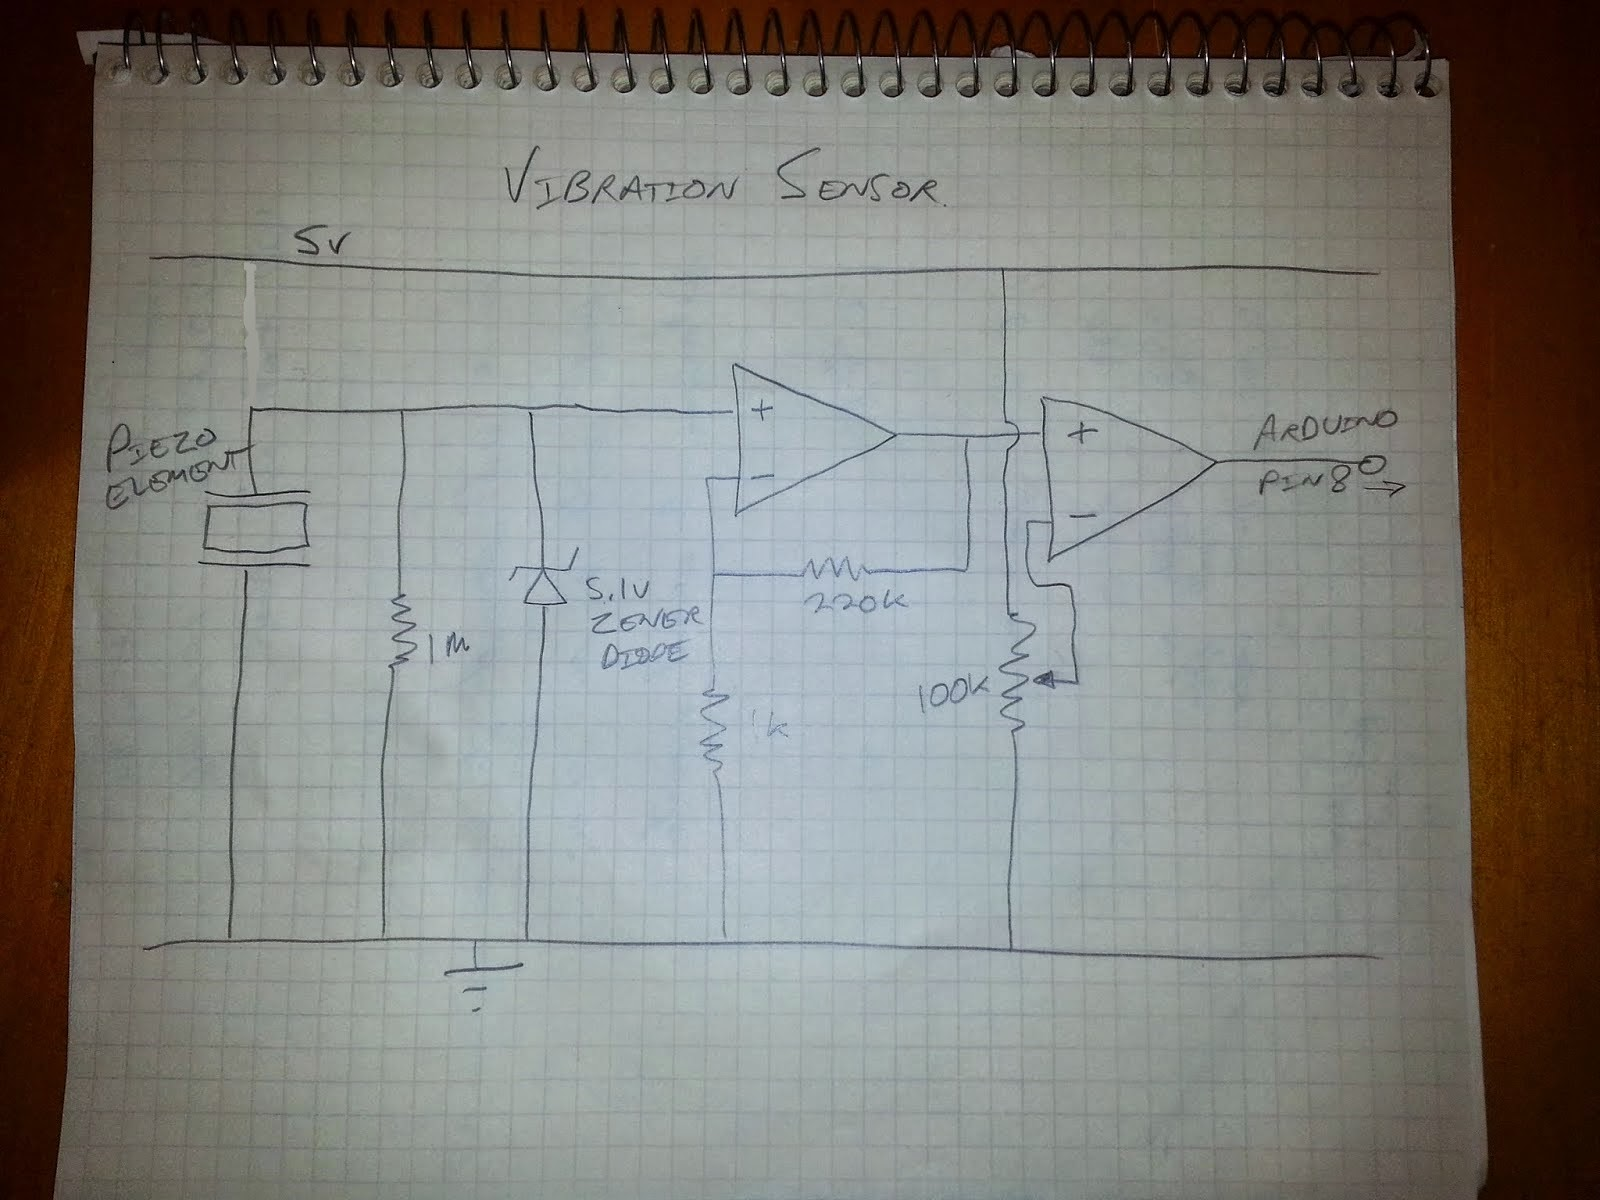 internet of things high sensitivity vibration sensor using arduino to hear when it senses vibration i use a simple piezo buzzer driven directly from arduino uno pin 13 below is the circuit diagram